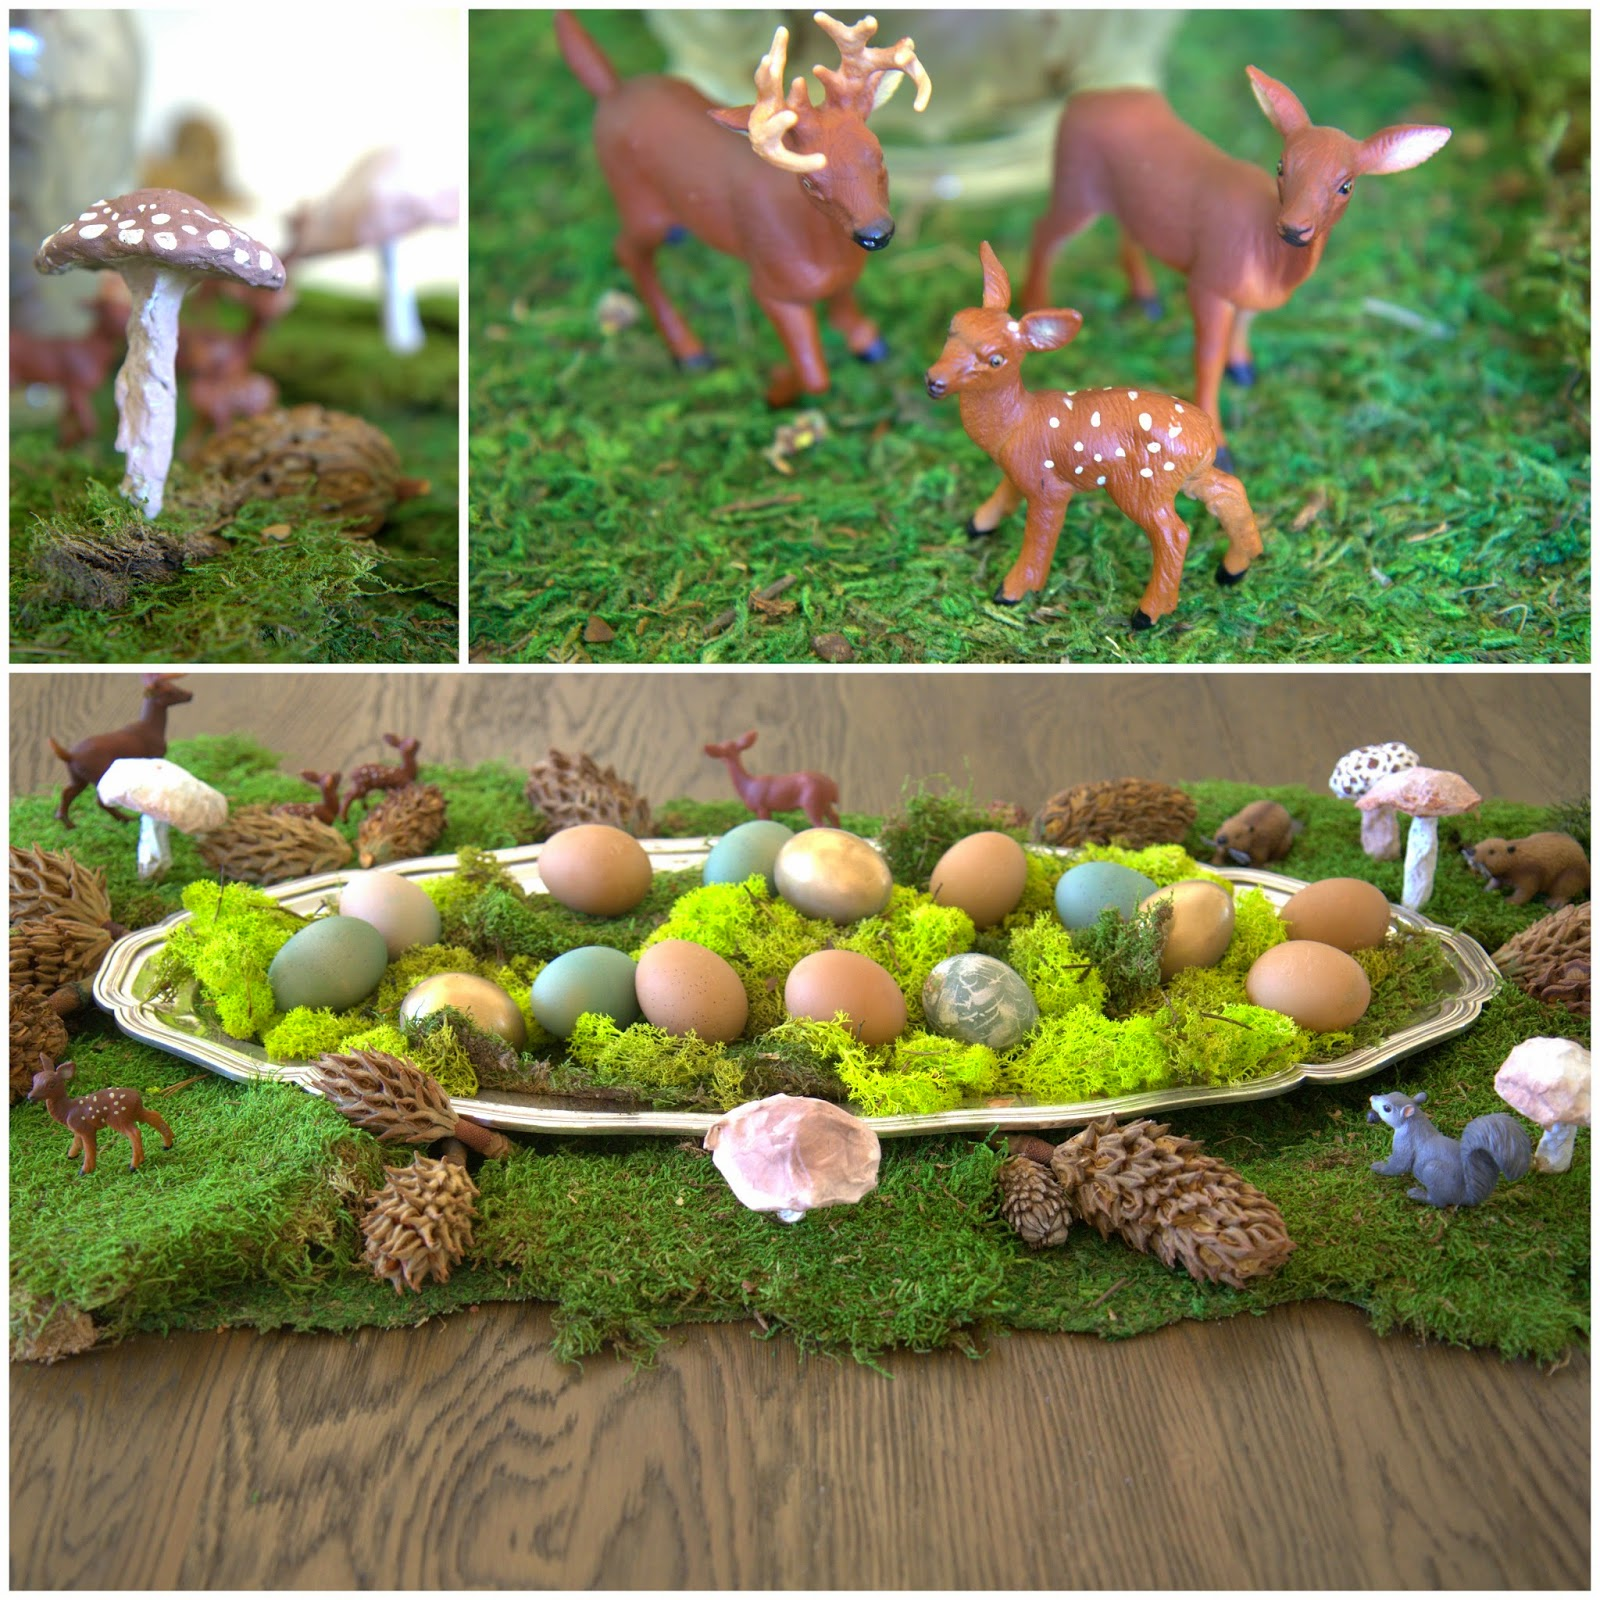 Woodland Party; Dining Room Table, moss runner, eggs, mushrooms, deer family: Nora's Nest